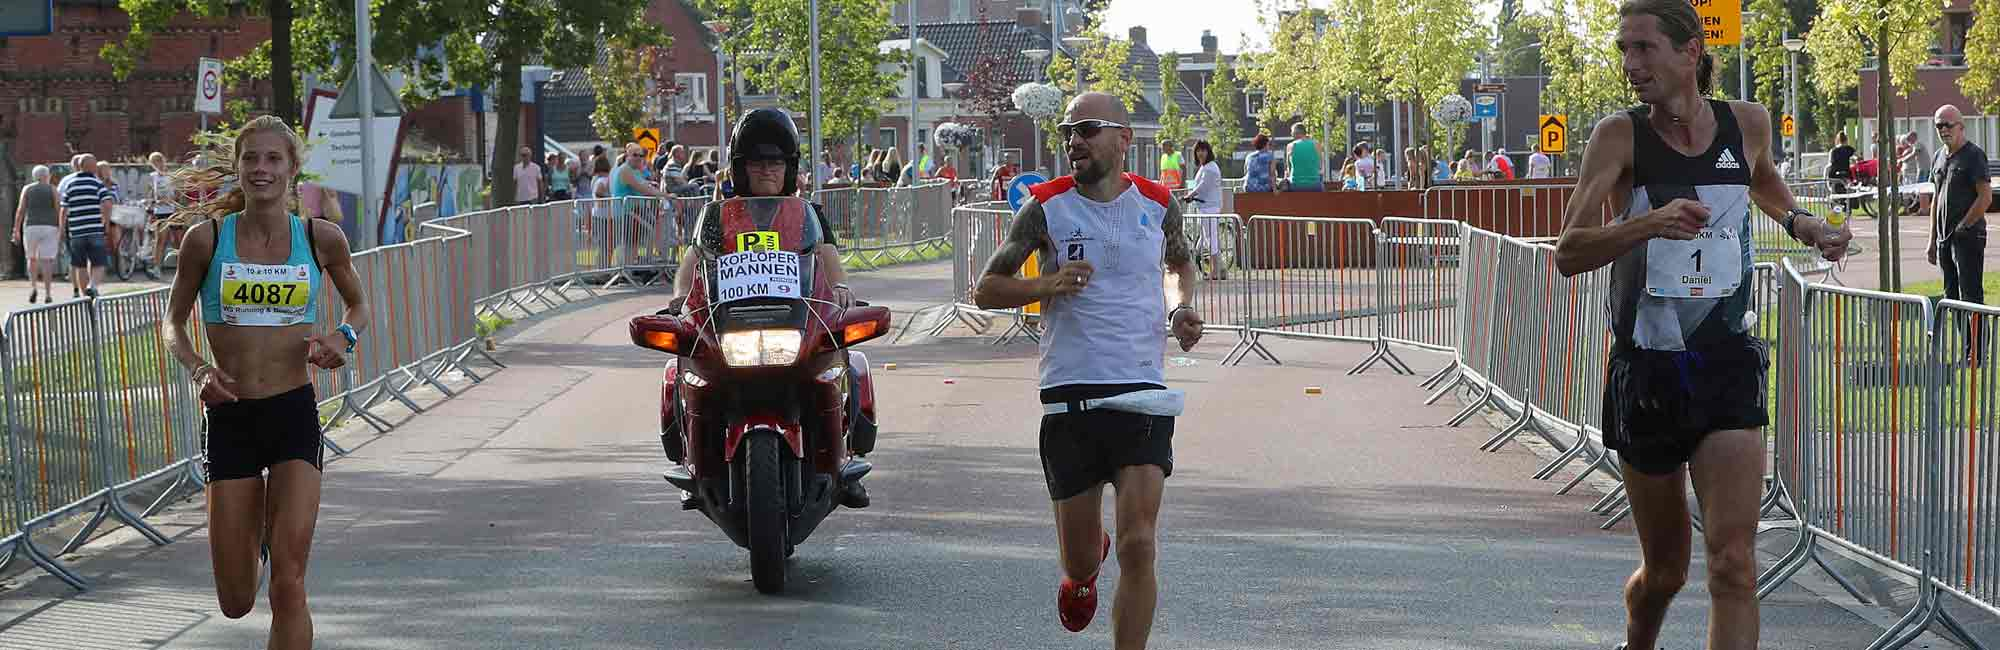 14 september 2019 - RUN Winschoten